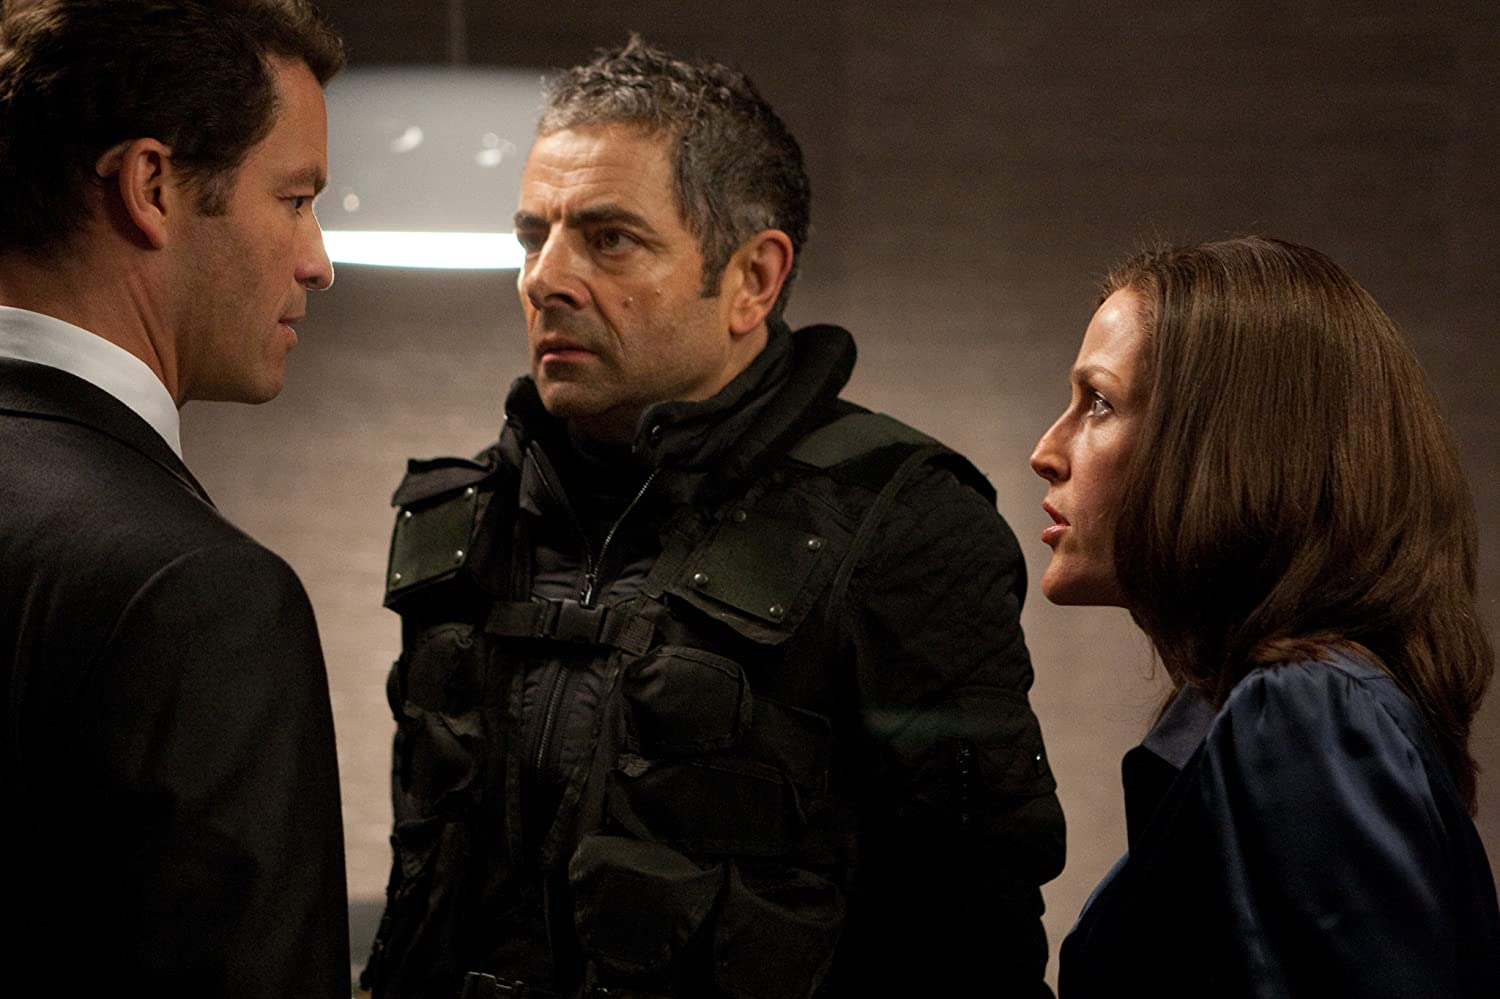 Gillian Anderson, Rowan Atkinson, and Dominic West in Johnny English Reborn (2011)